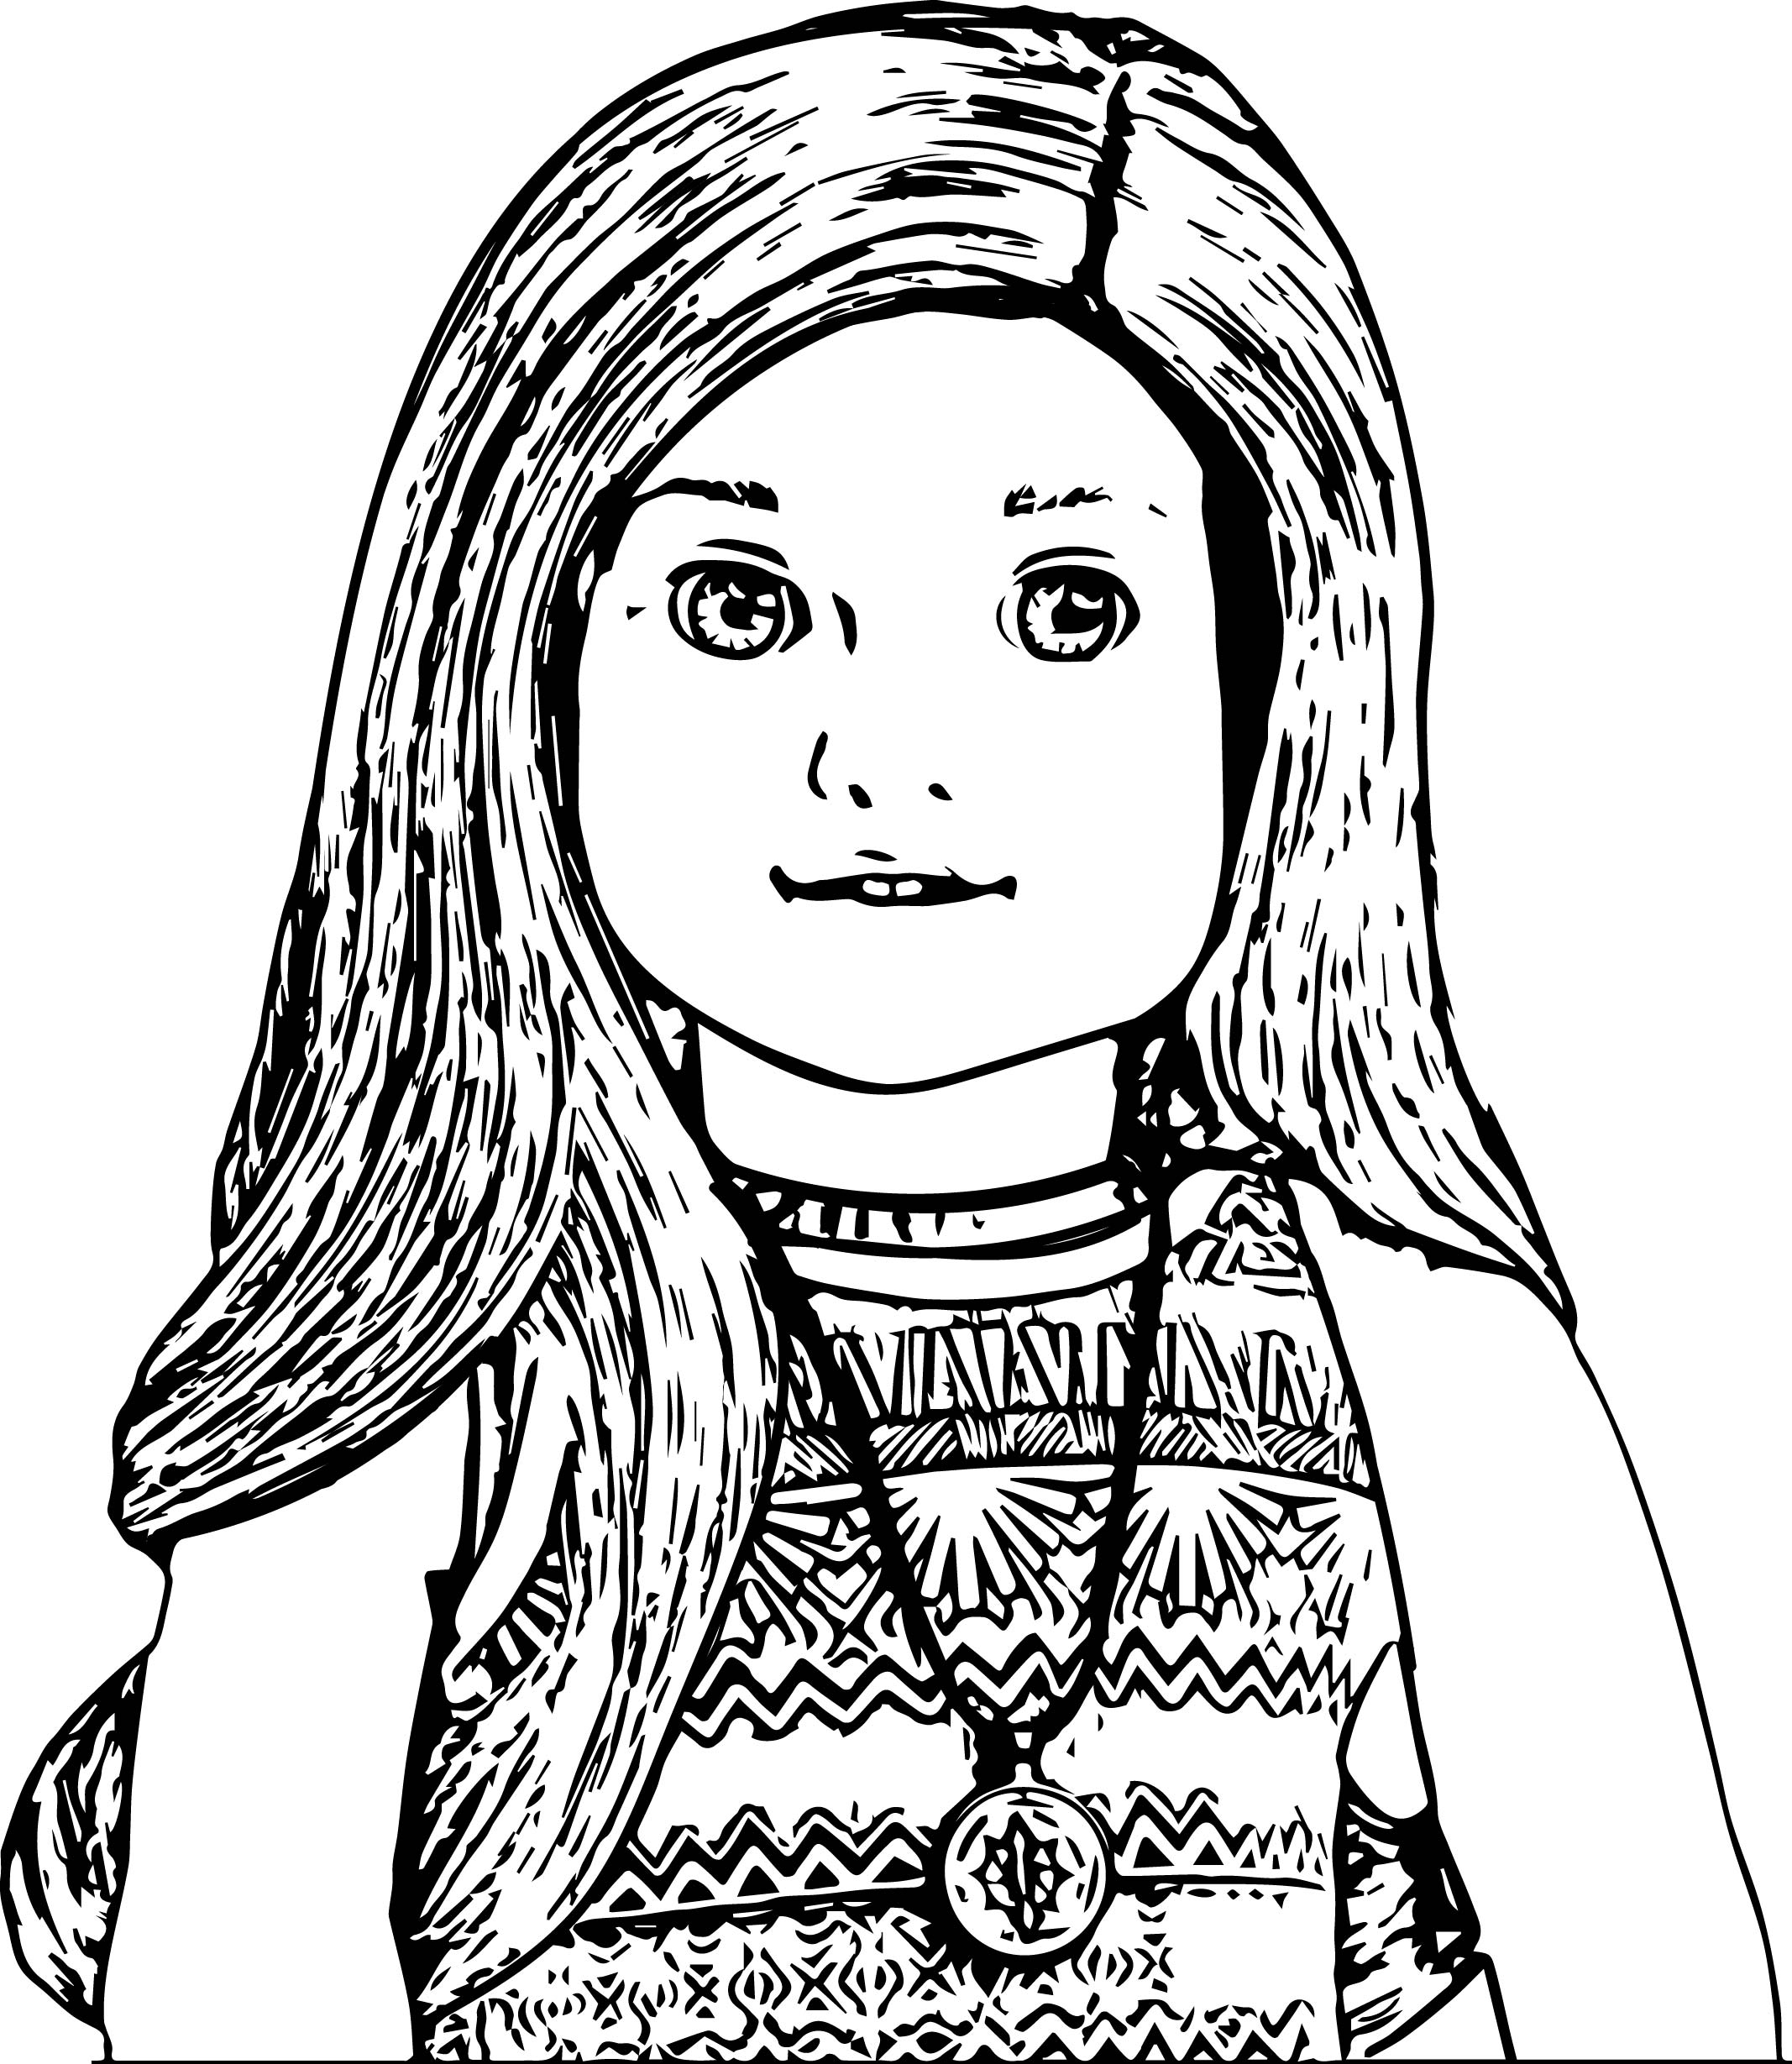 American doll lea closeup coloring page for American girl doll coloring page